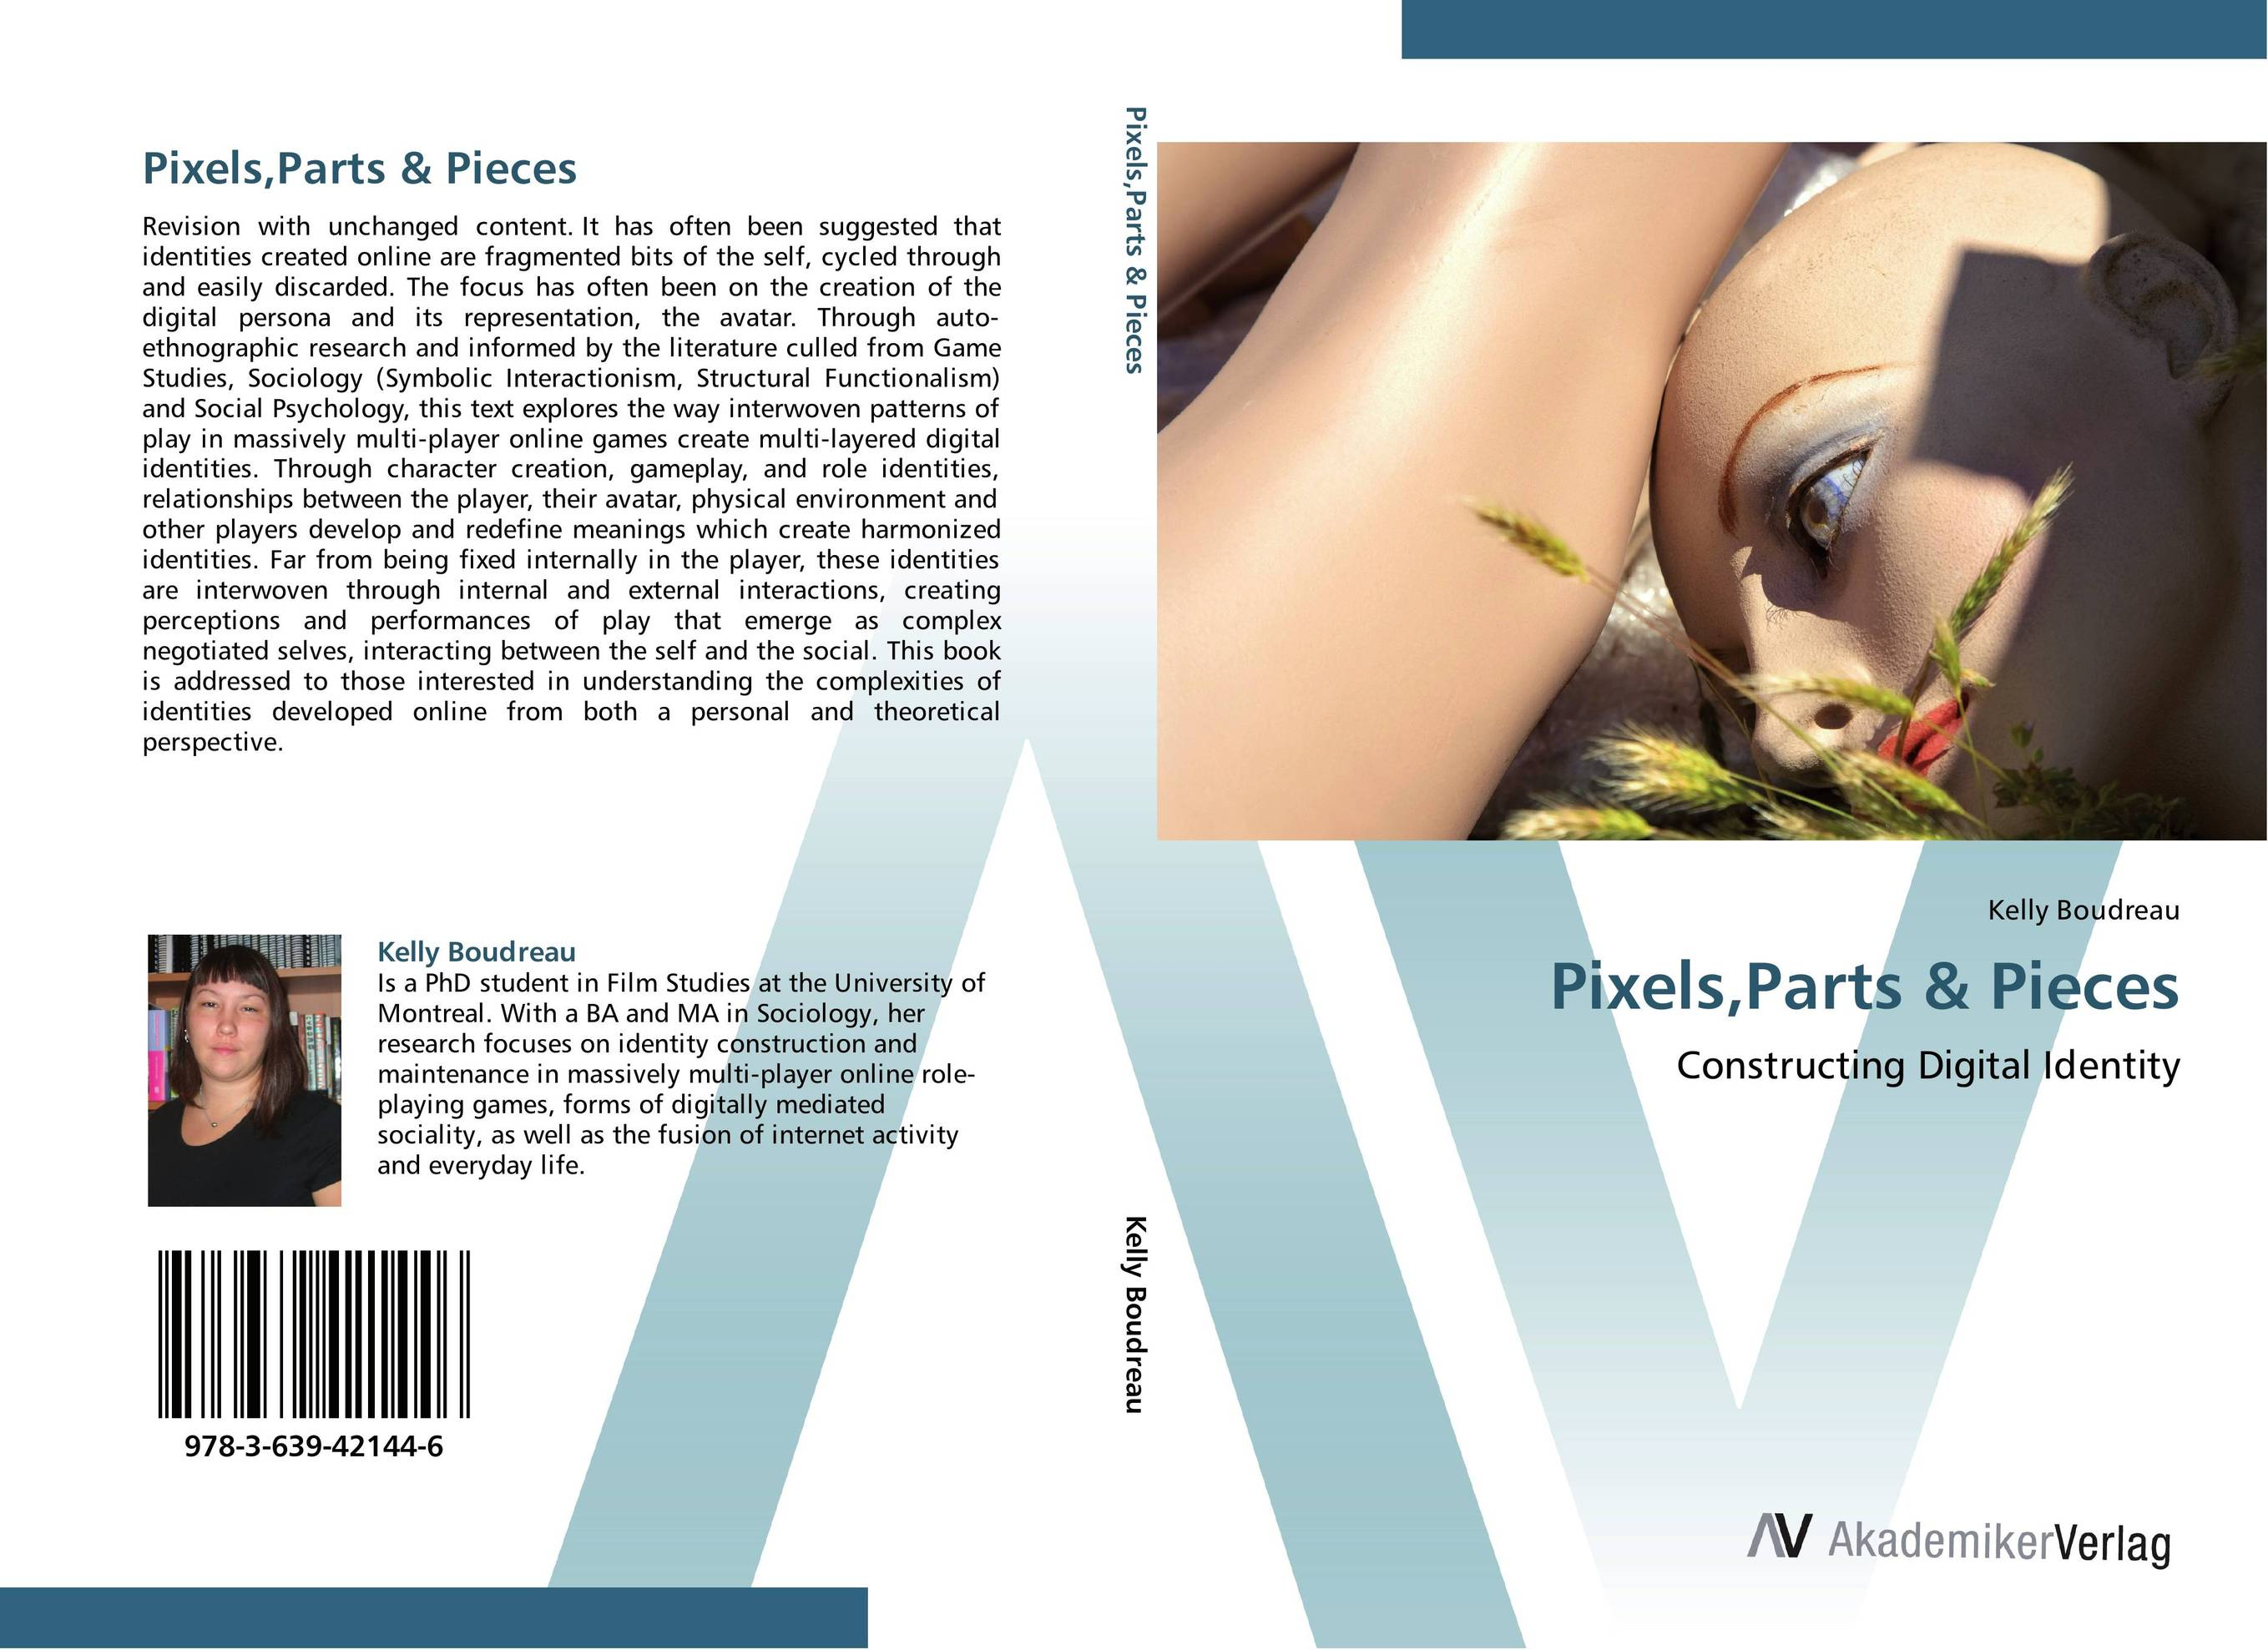 Pixels,Parts & Pieces new managerialism and gendered identities